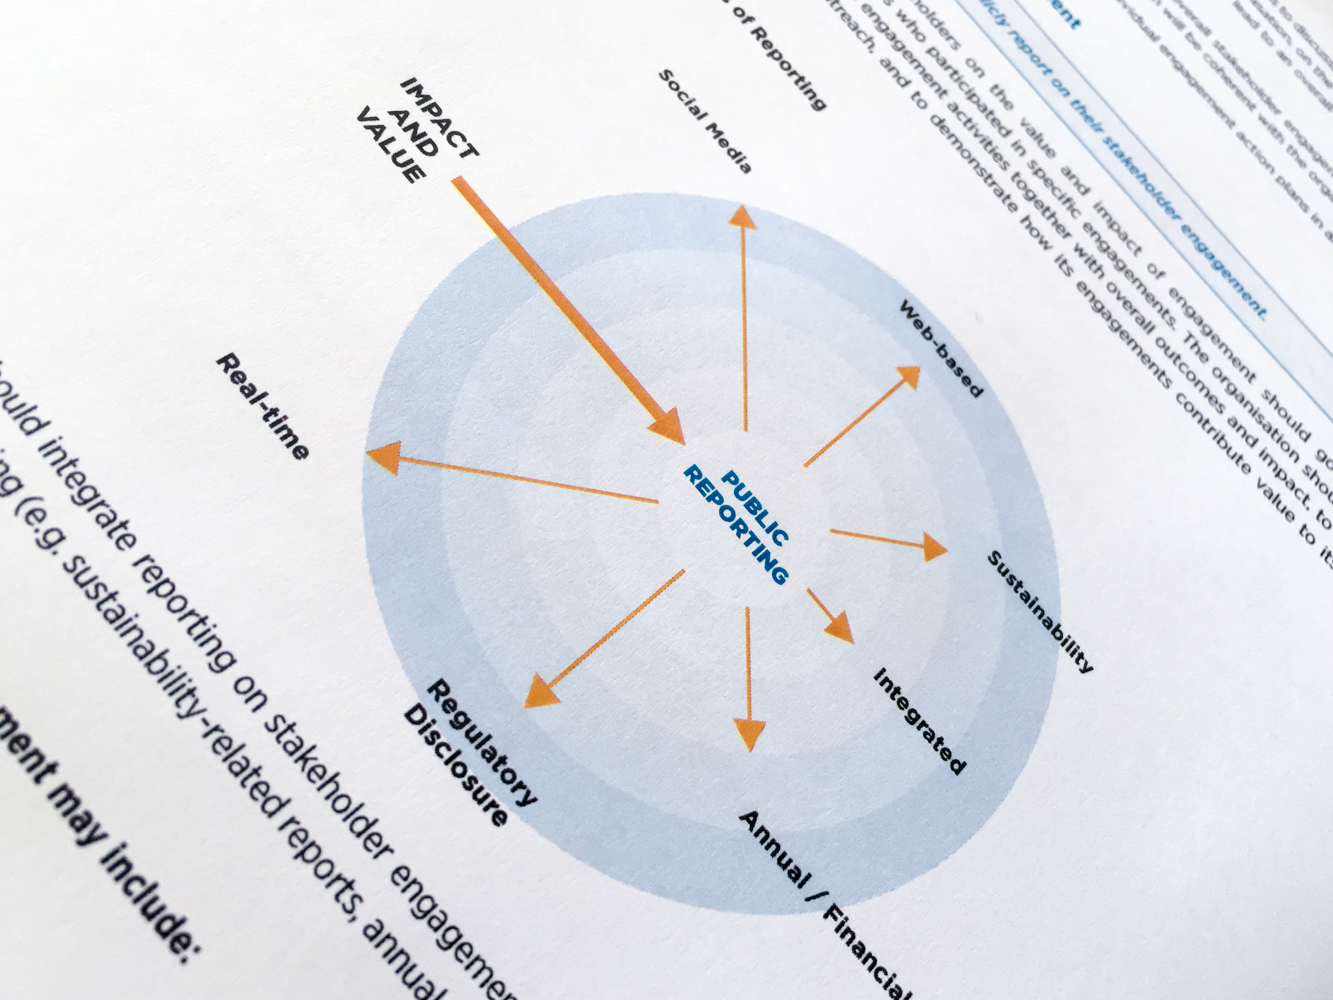 AccountAbility Stakeholder Engagement Standard 2015